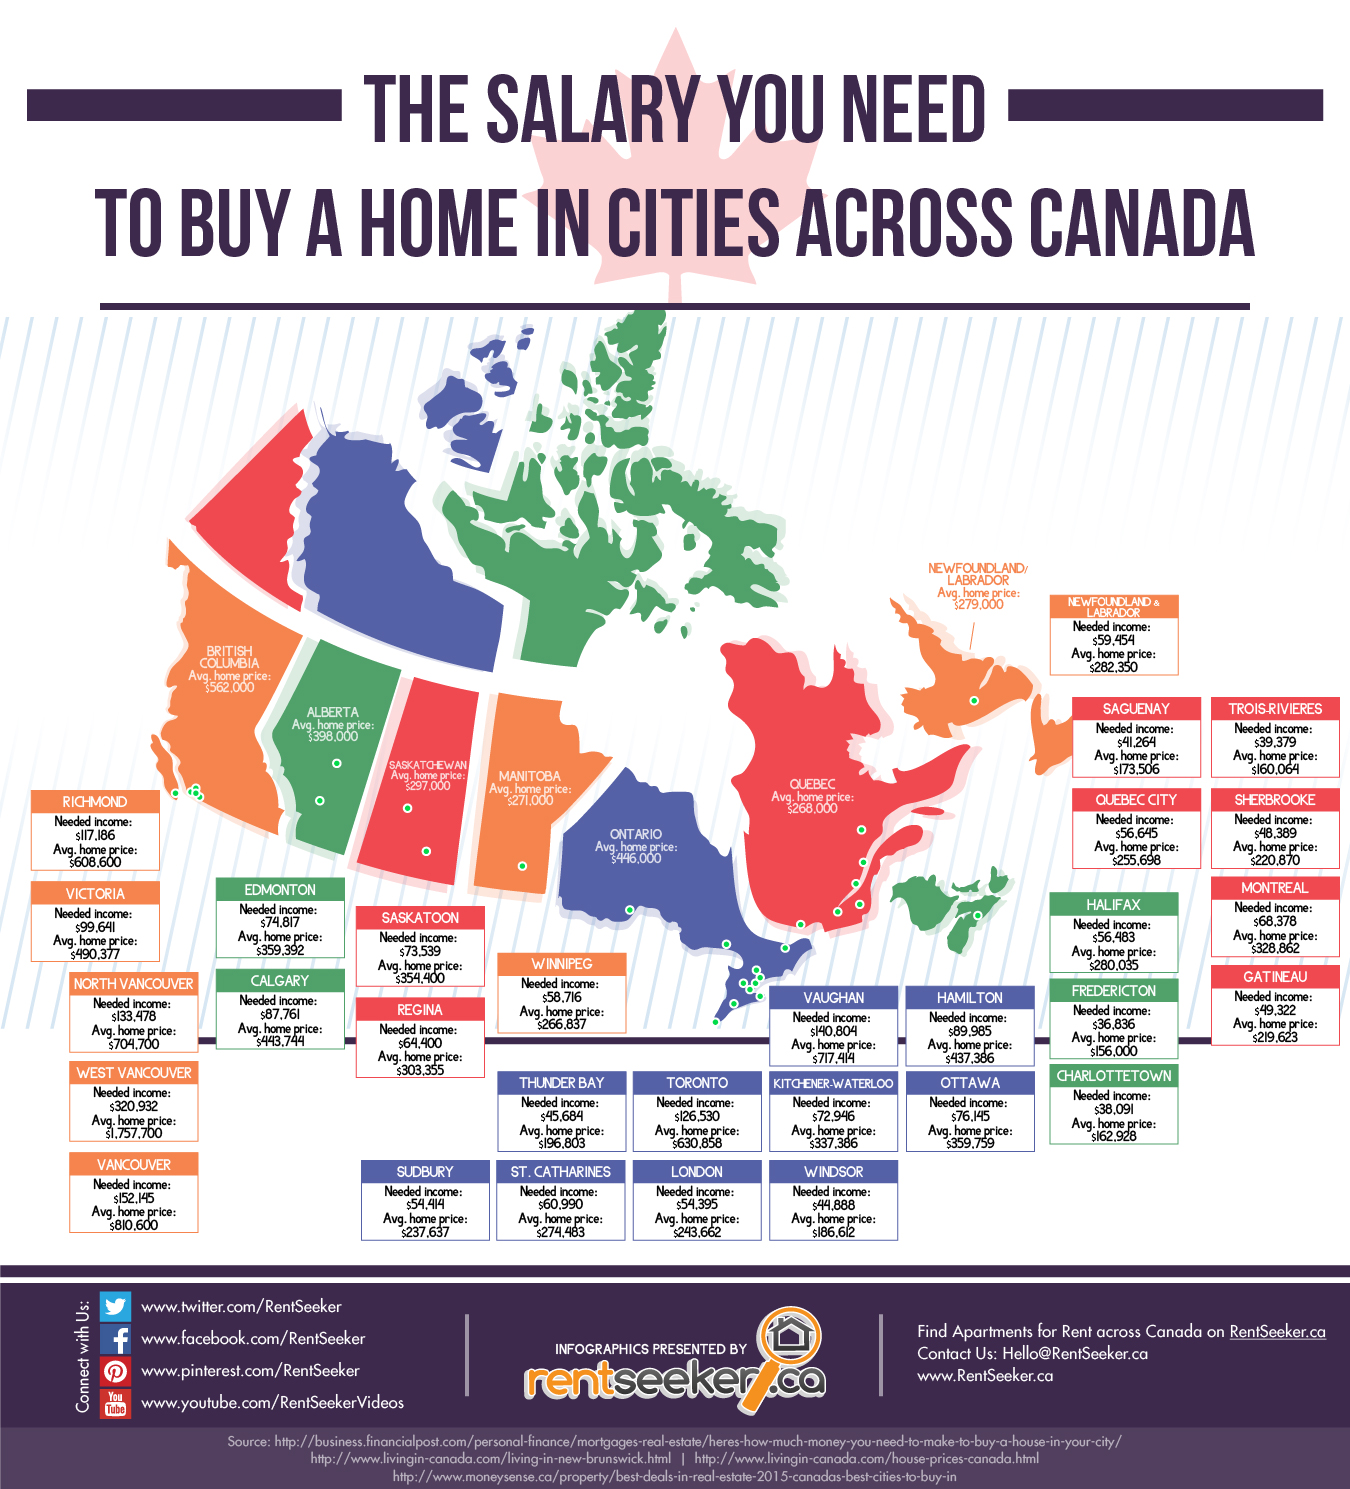 How Much Do You Need To Make To Buy A Home In Canada